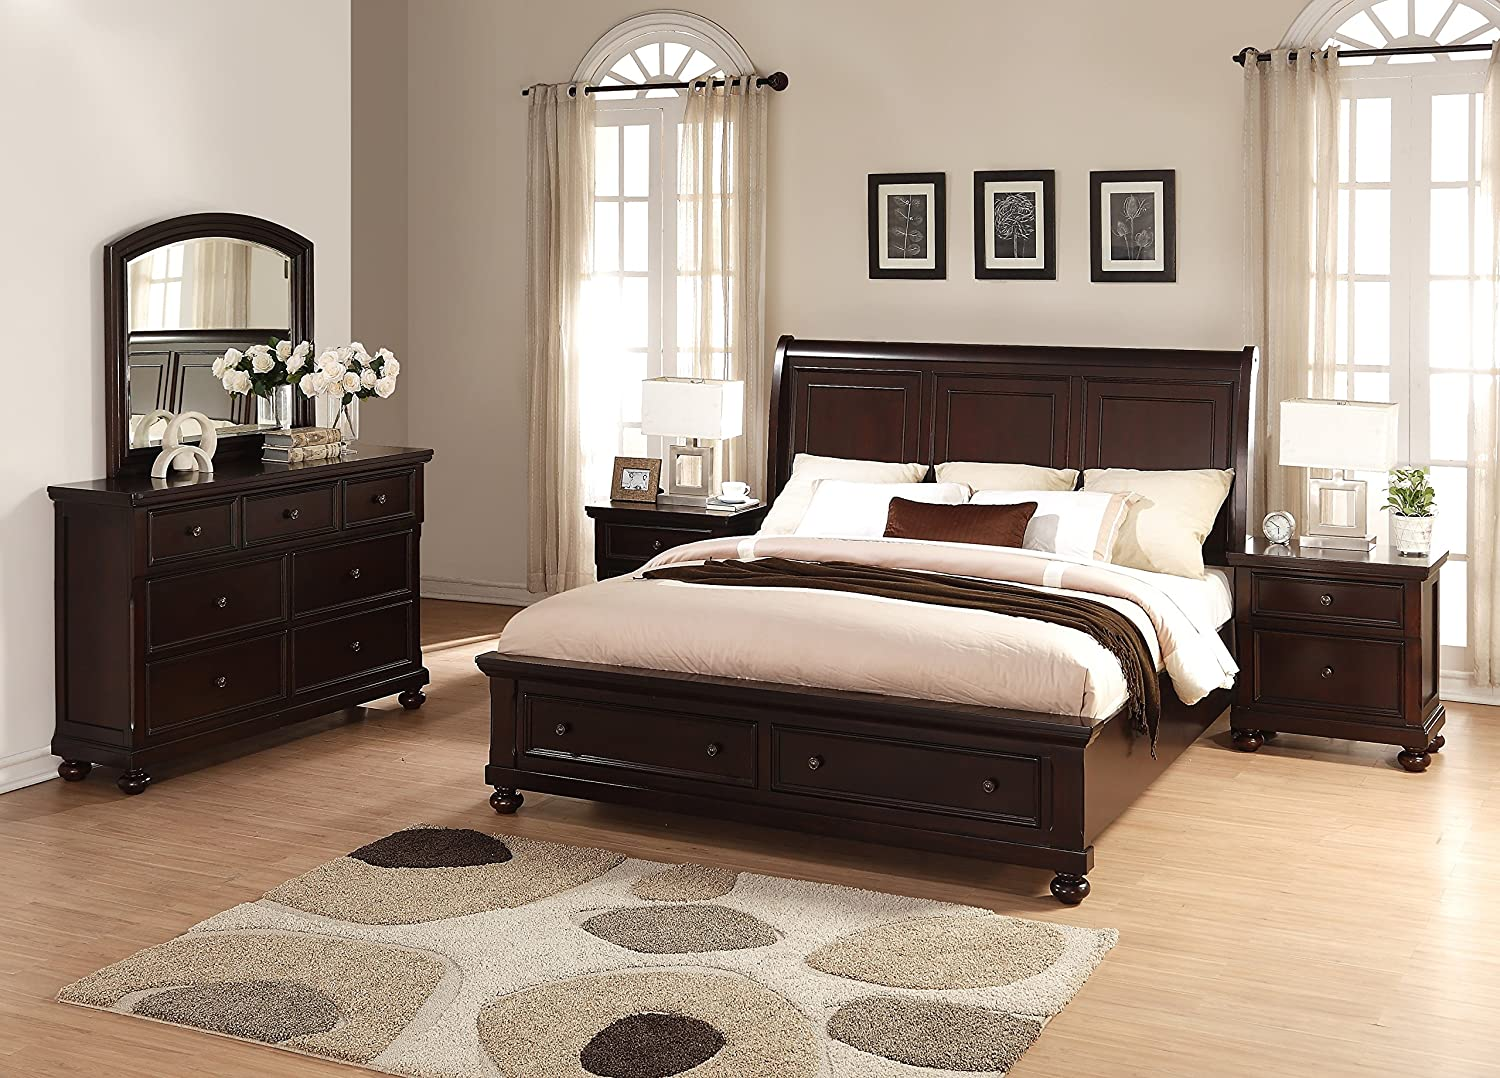 Amazon.com: Roundhill Furniture Brishland Storage Bedroom Set ...